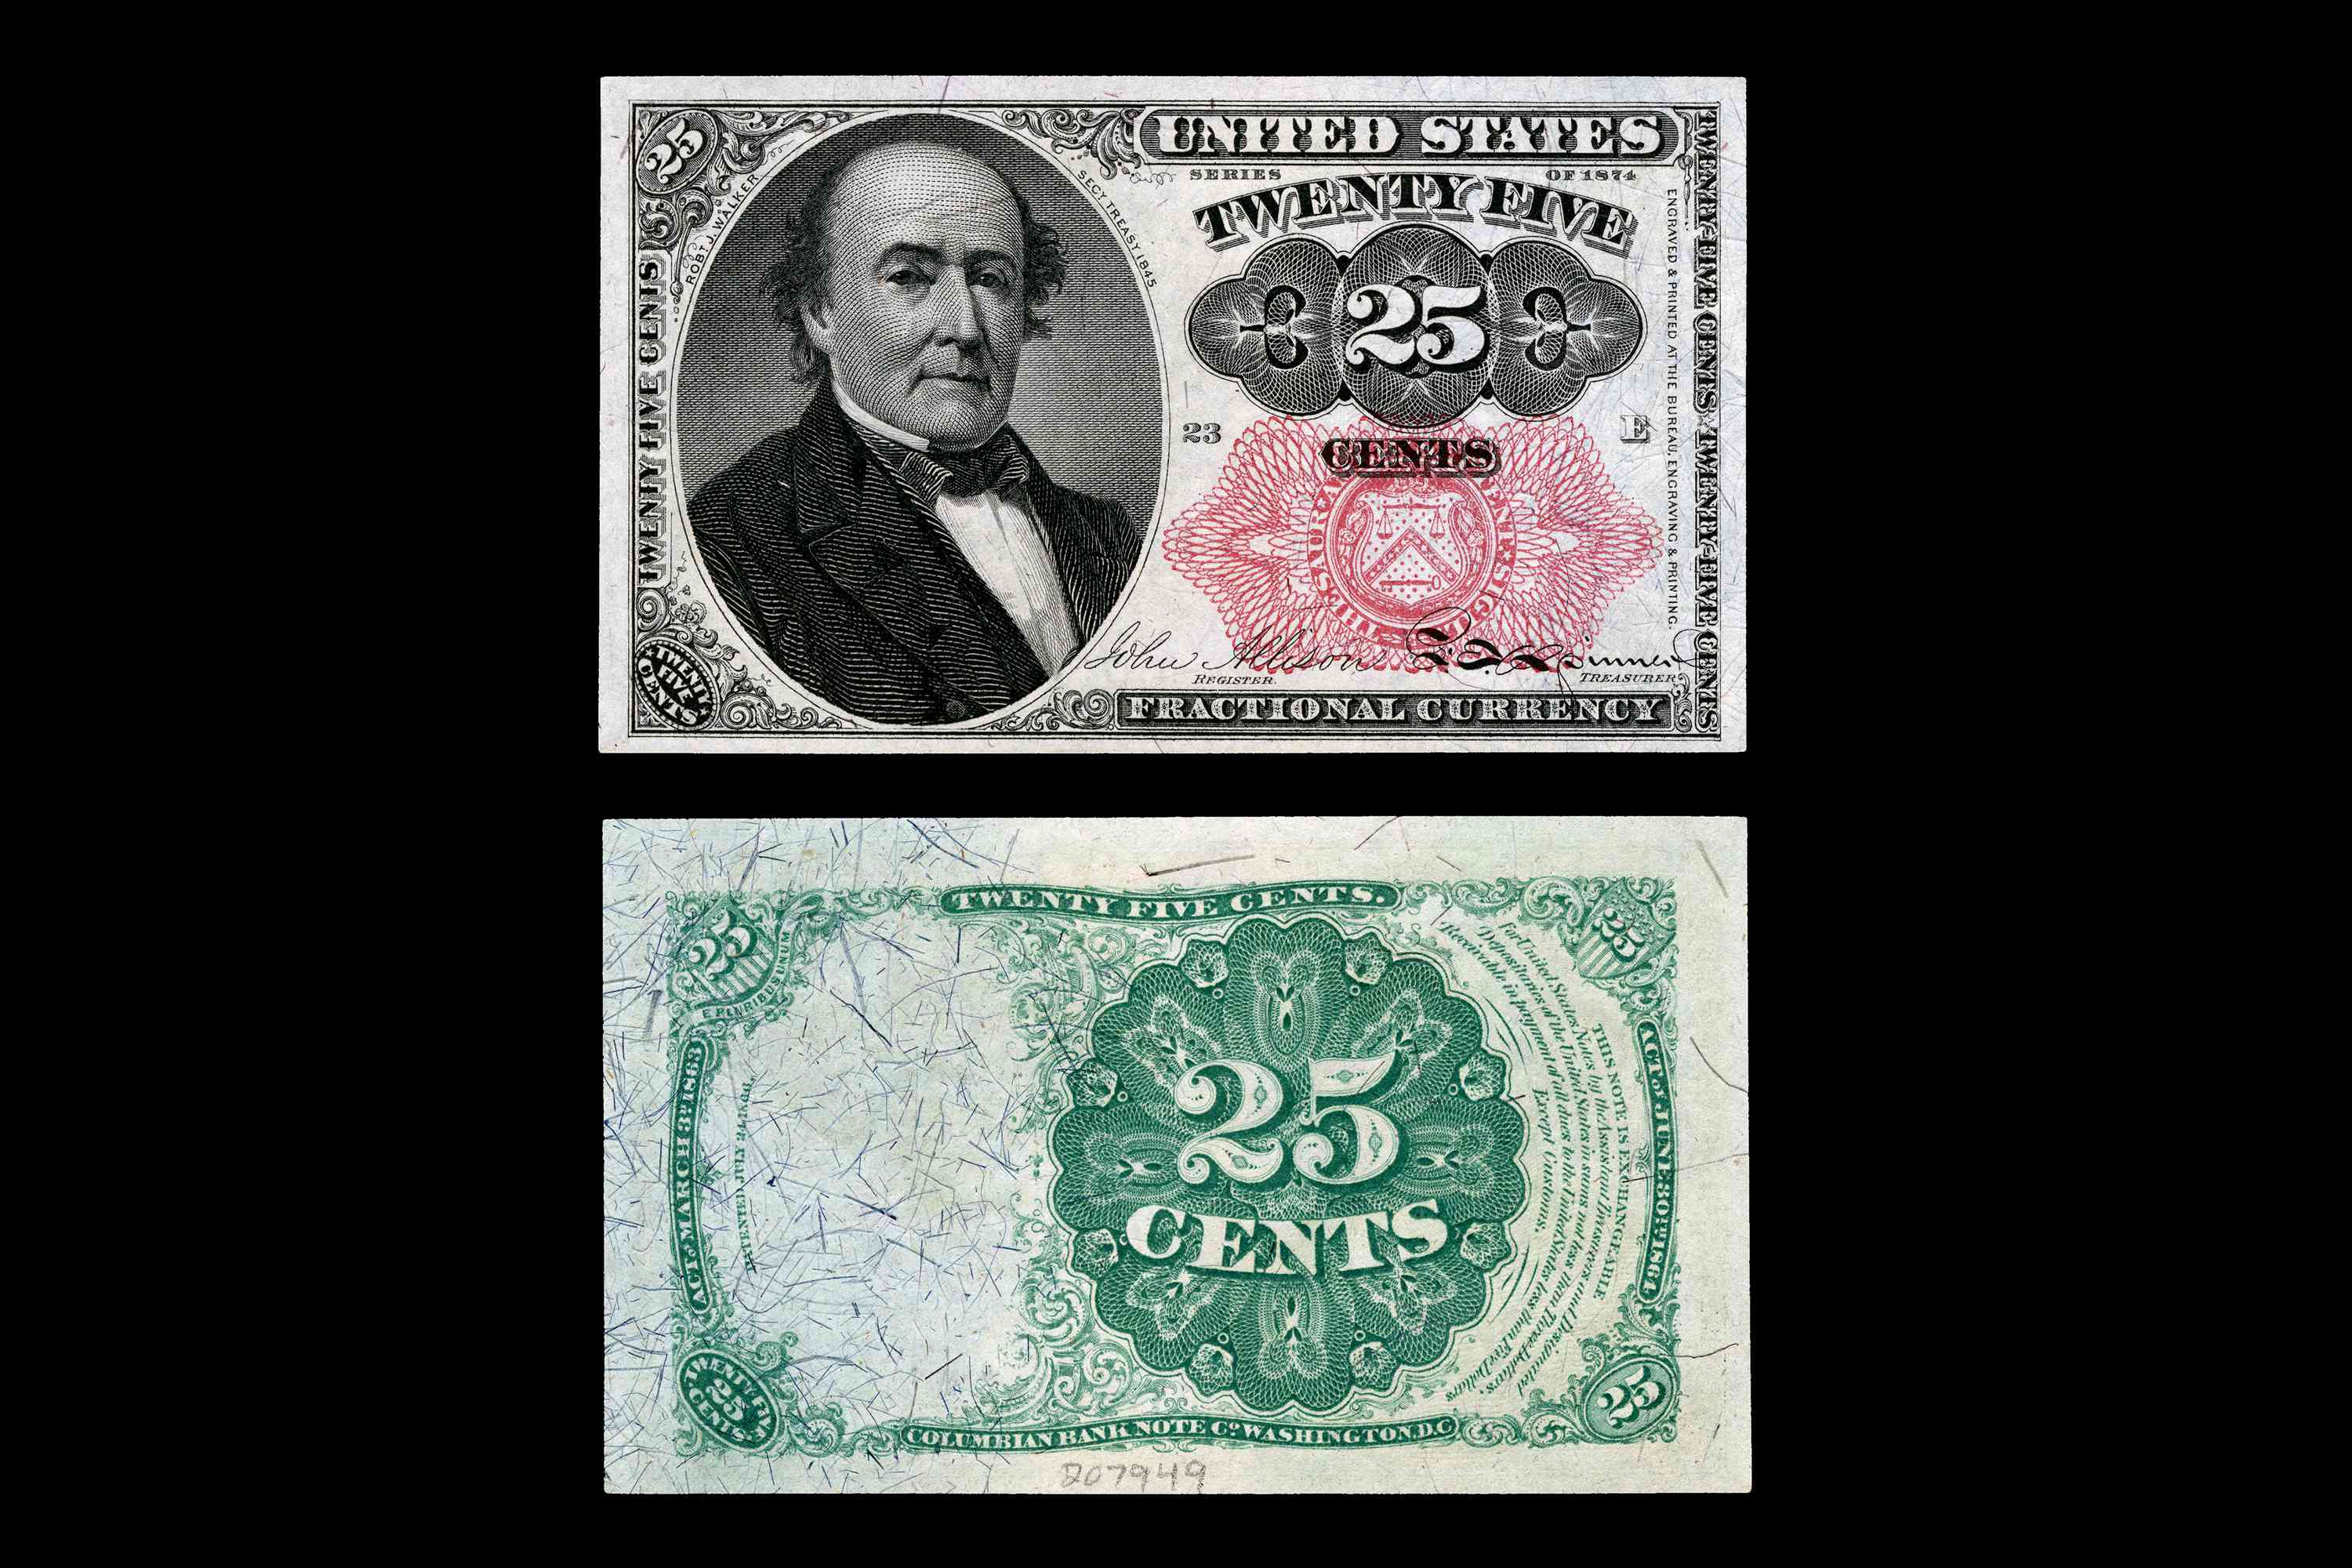 United States Fractional Currency Fifth Issue Twenty-Five Cent Note